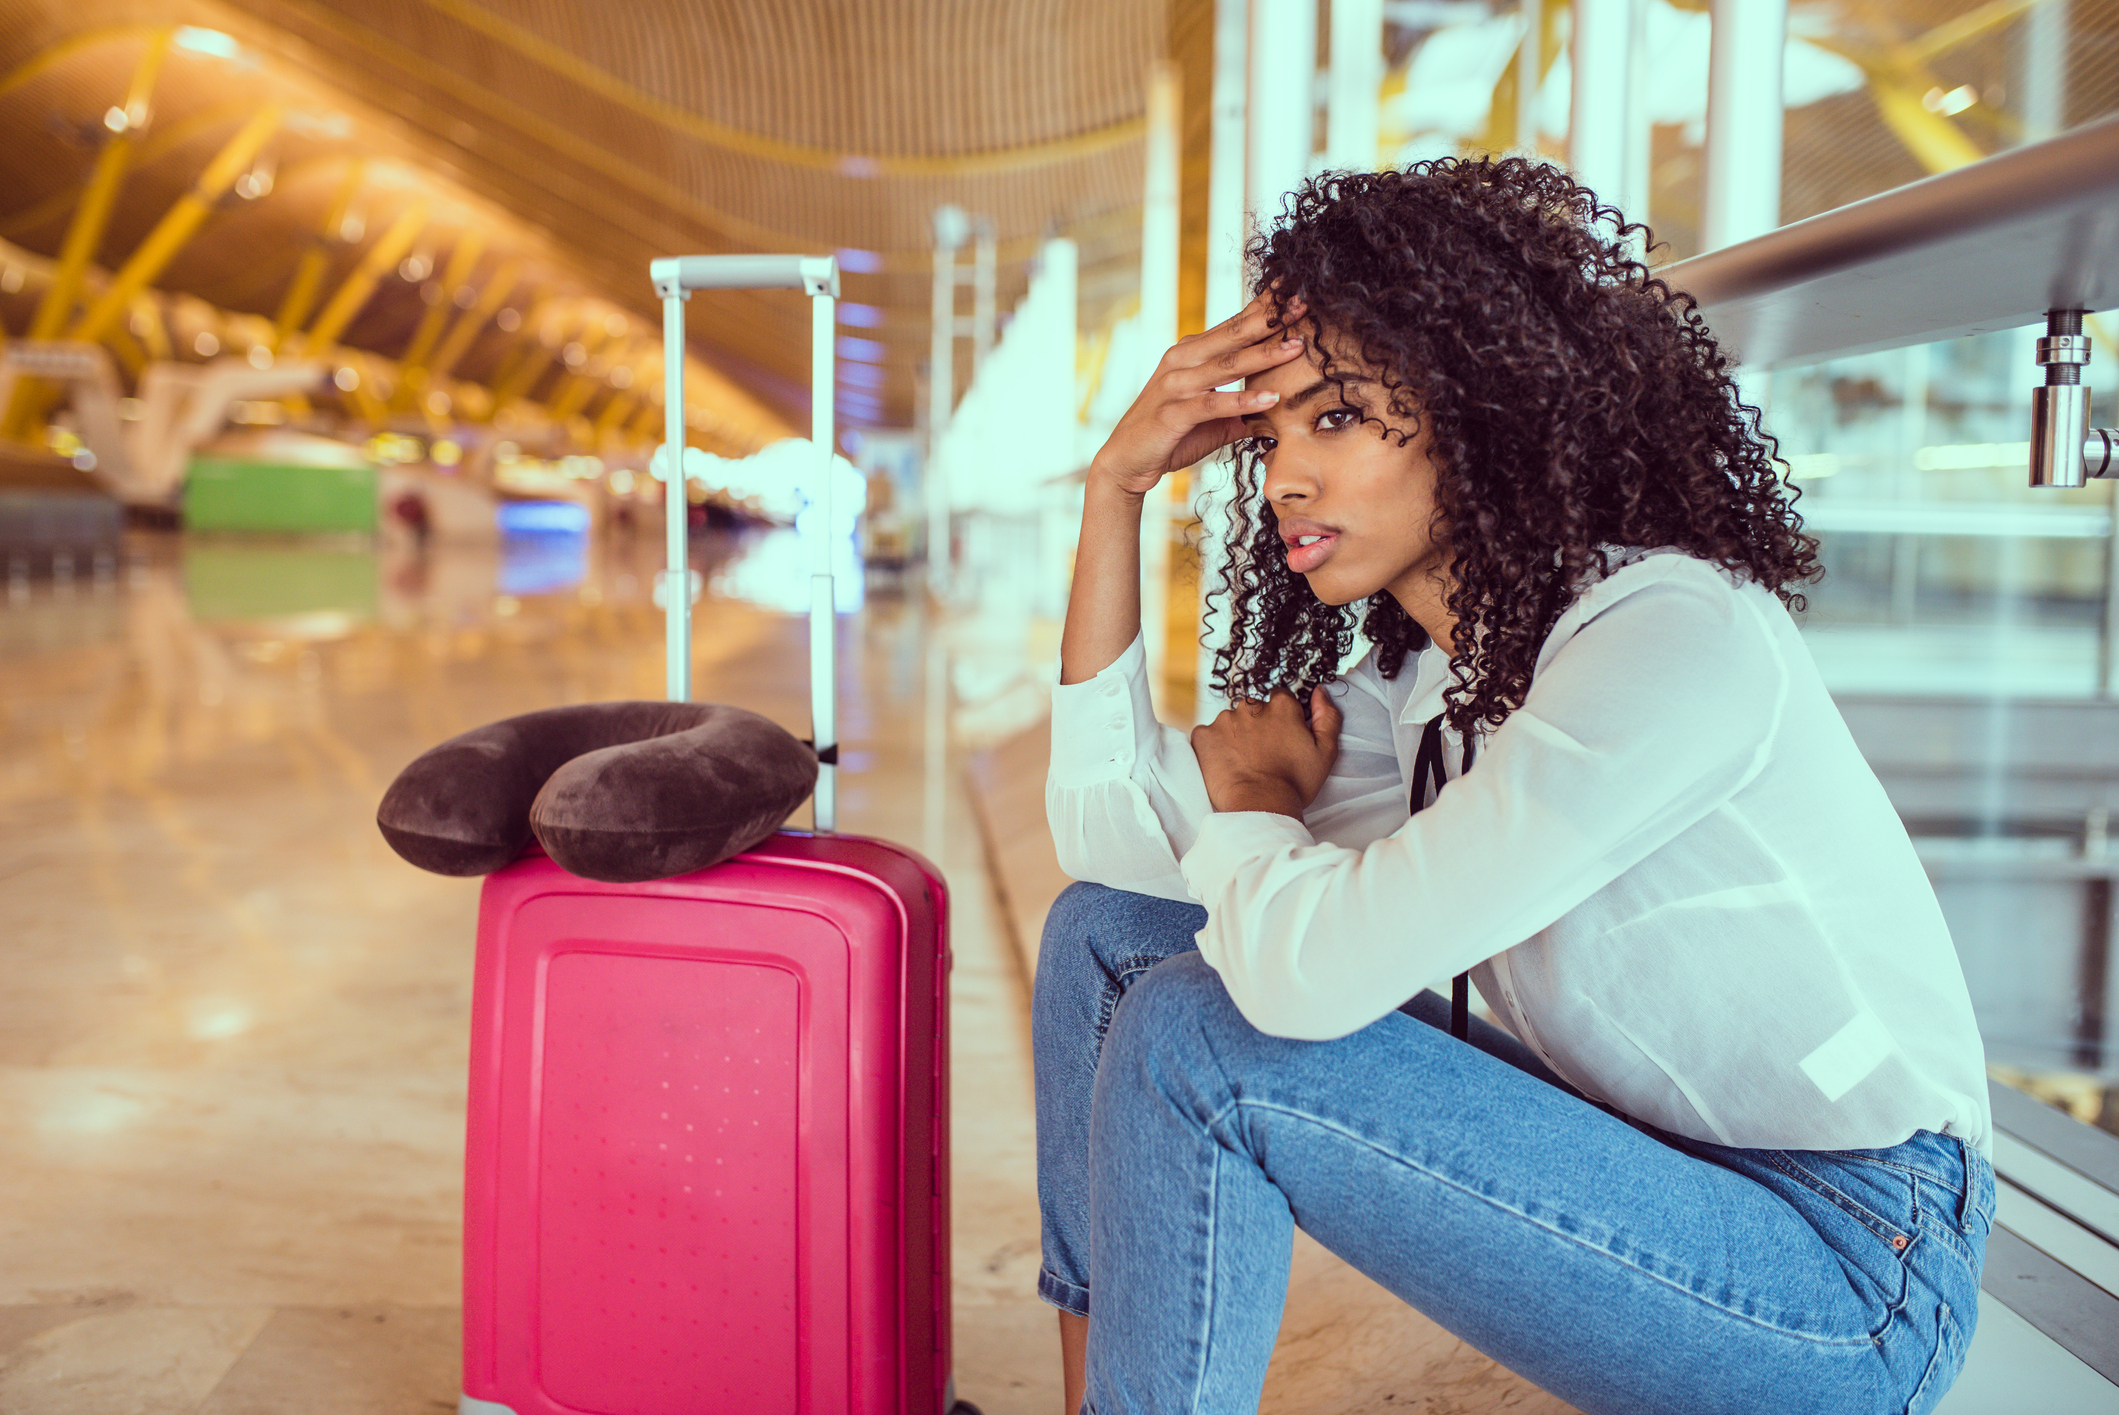 7 Unexpected Fees That Could Ruin Your Vacation